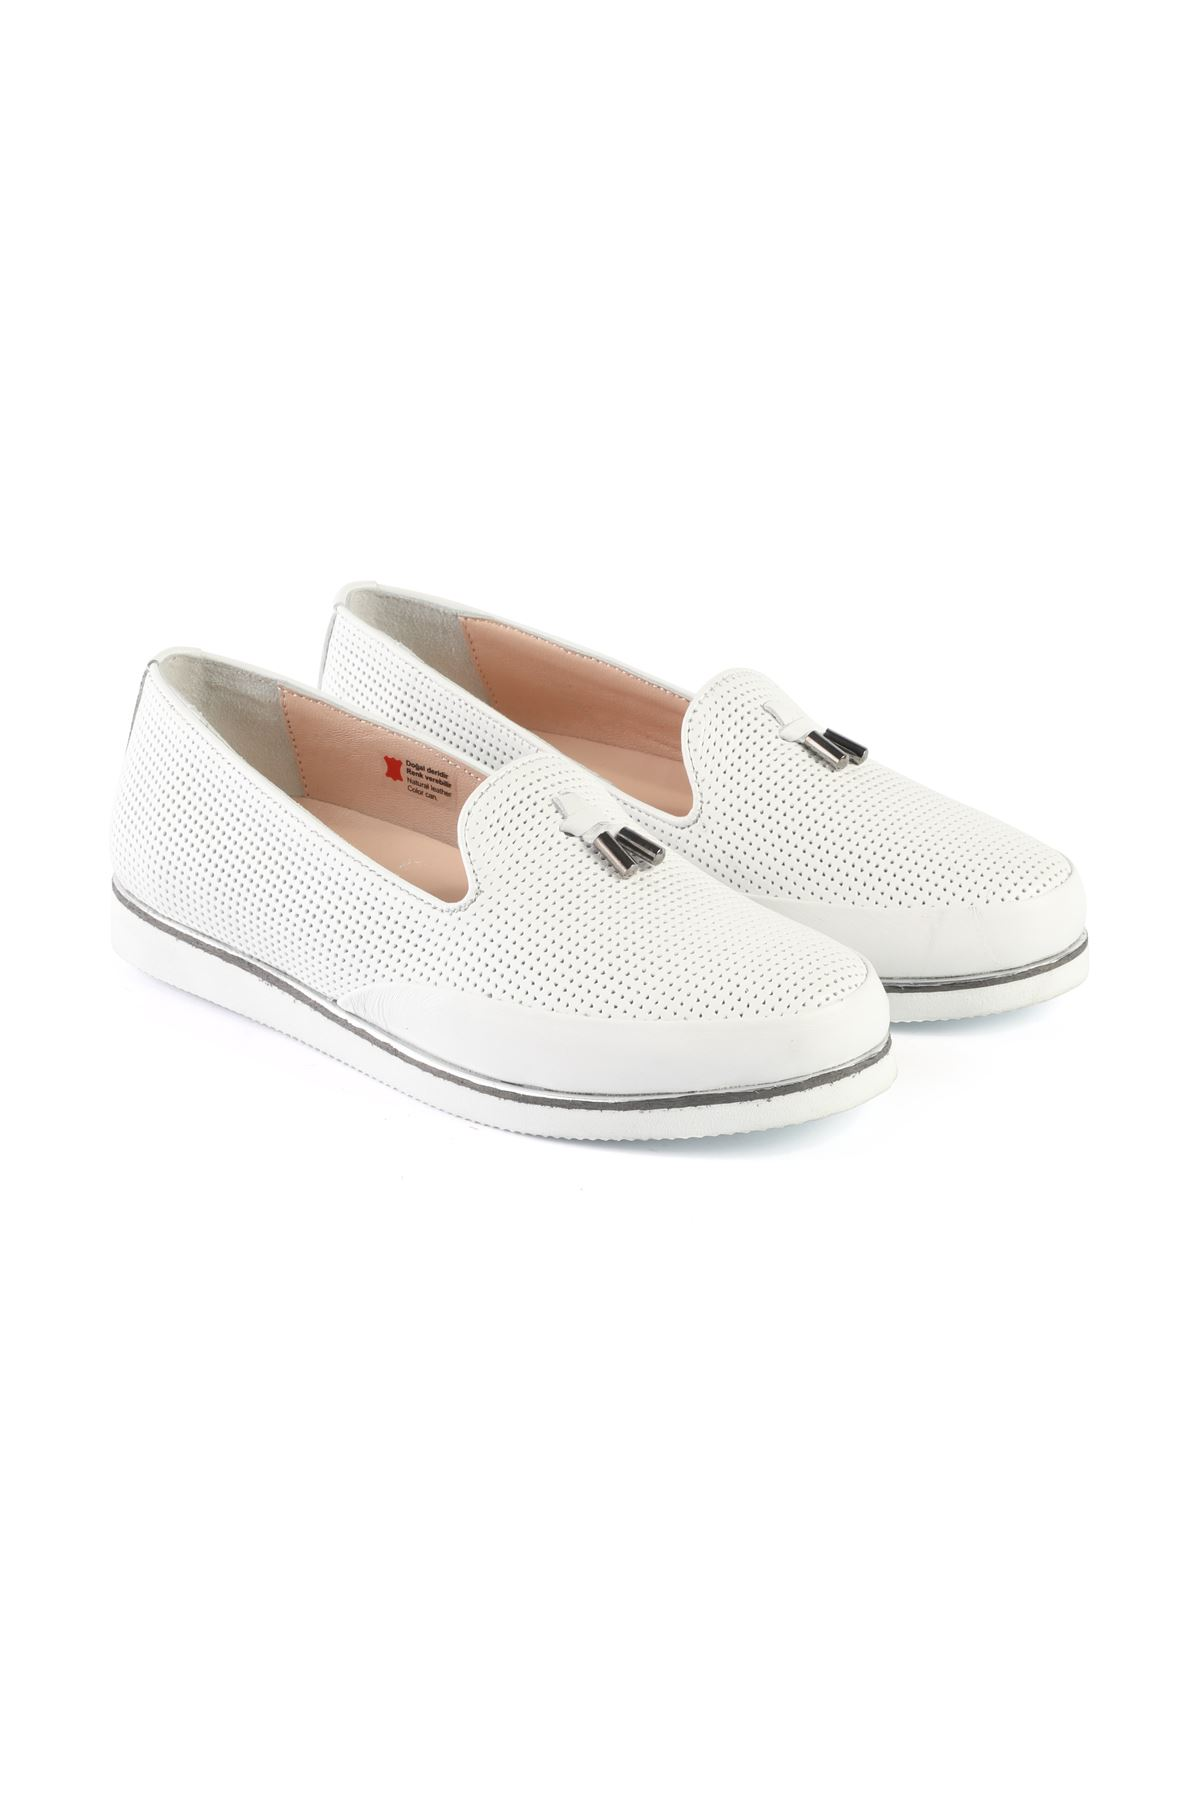 Libero AH8090 White Babette Shoes